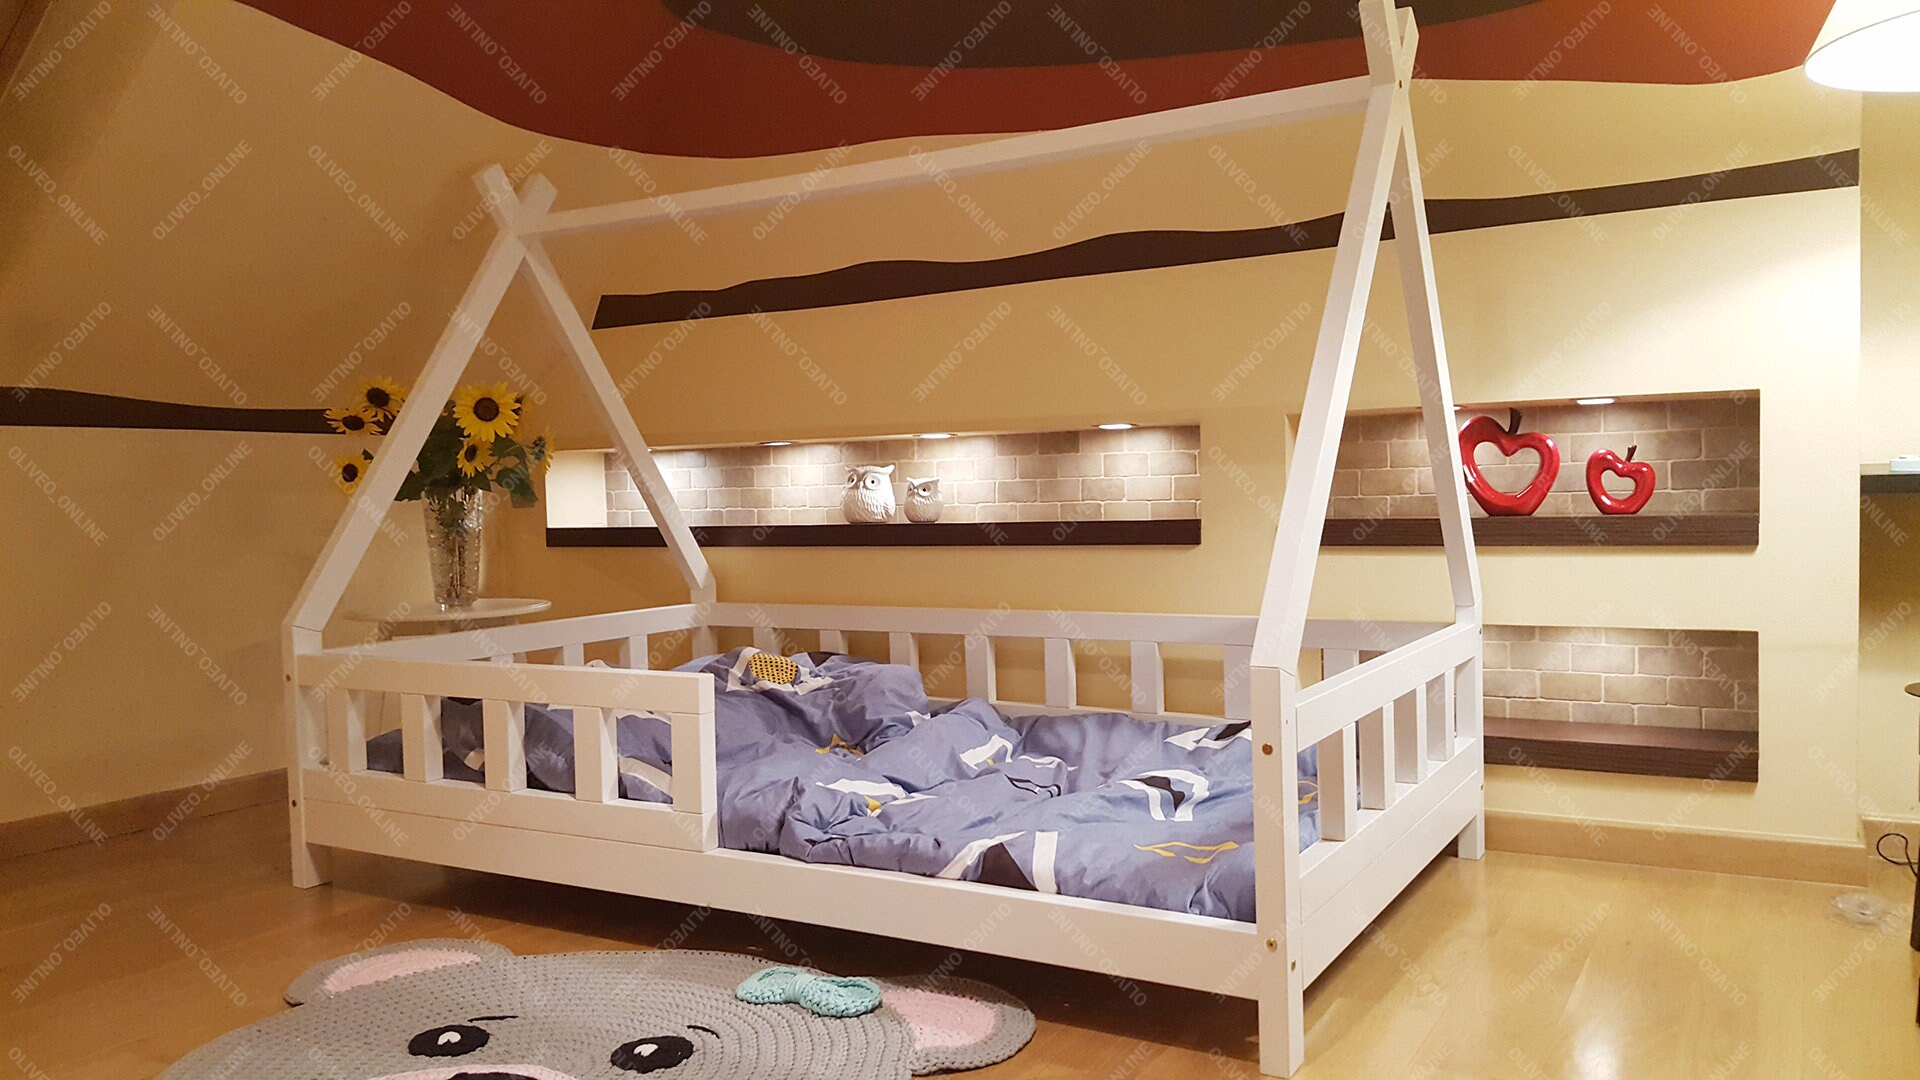 Tipi Bett 120x200 Tipi Bed For Children Kids Bed Play Bed Children Bed House Indian Tent Wood